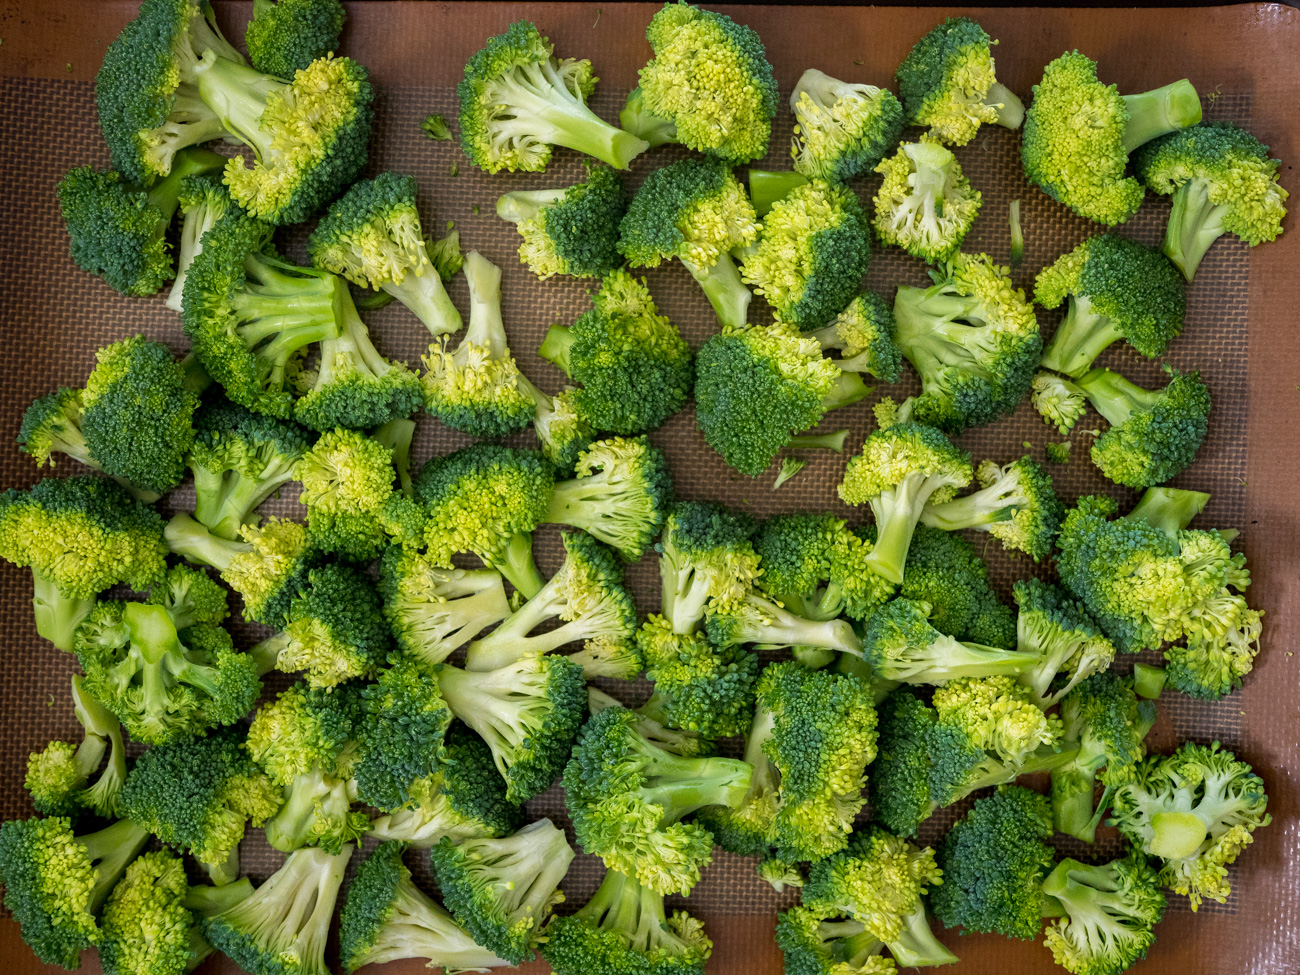 Wash and cut broccoli florets into bite-sized chunks.